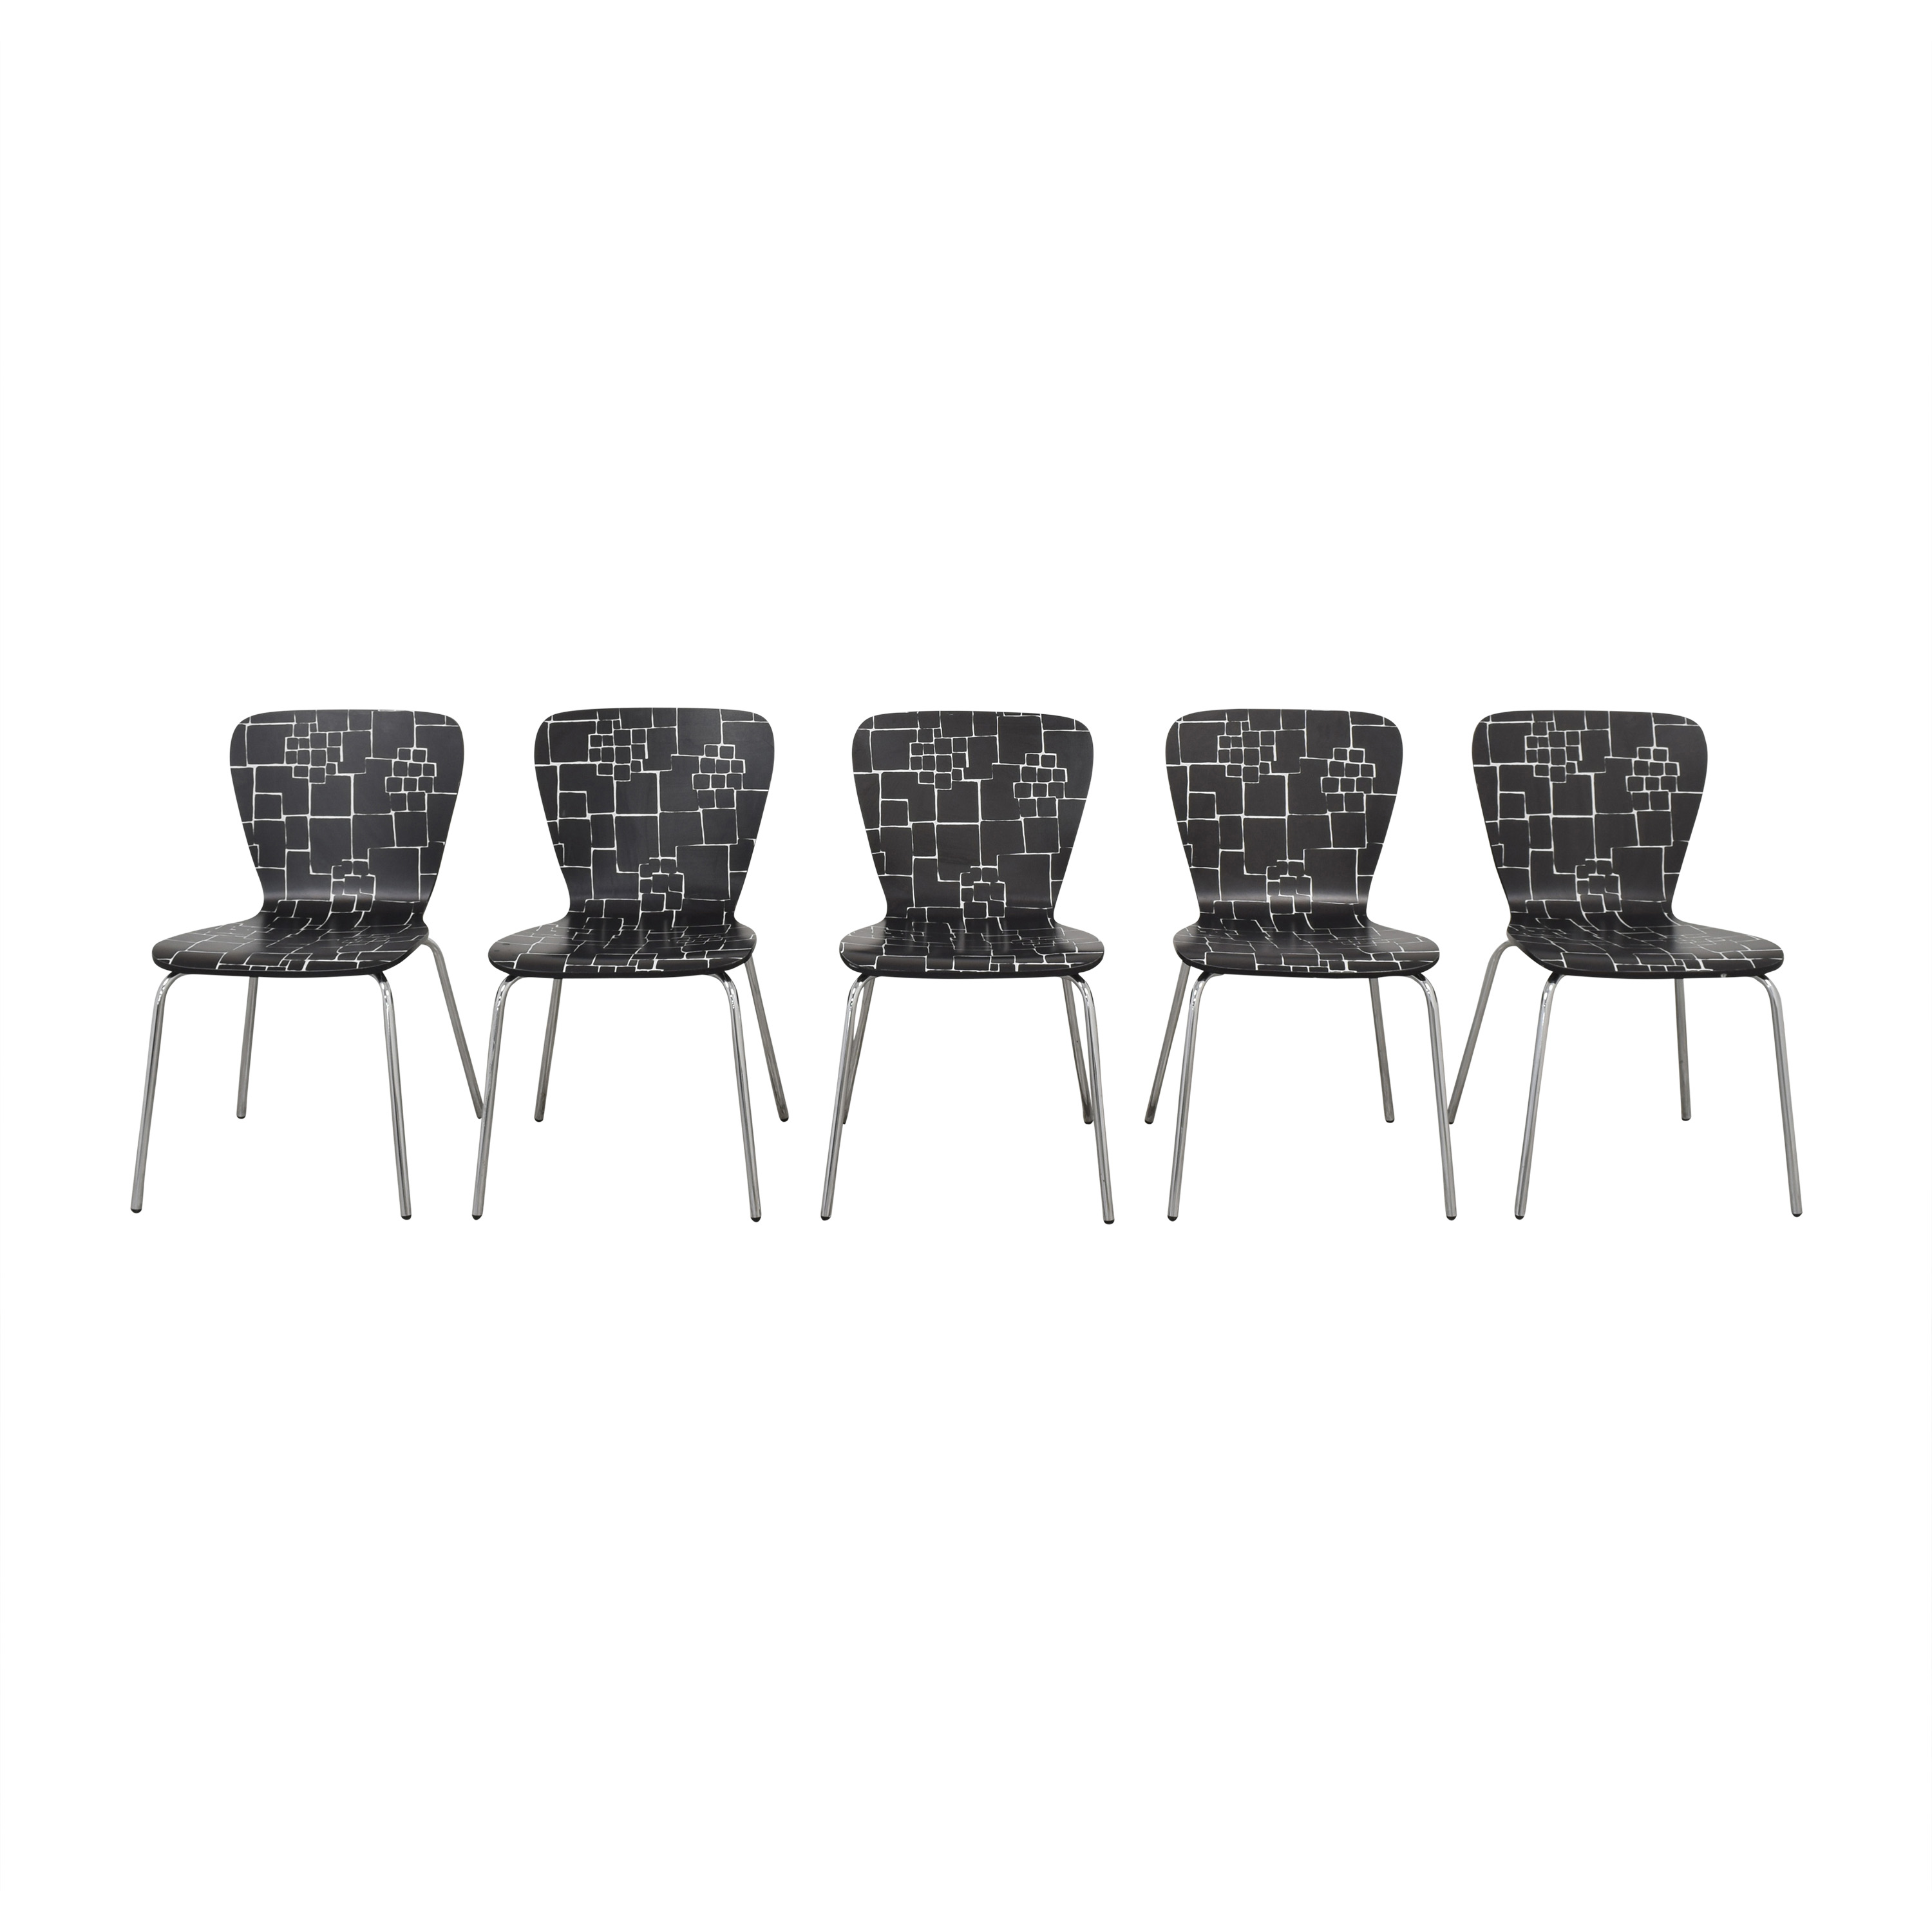 Crate & Barrel Crate & Barrel Felix Side Dining Chairs price